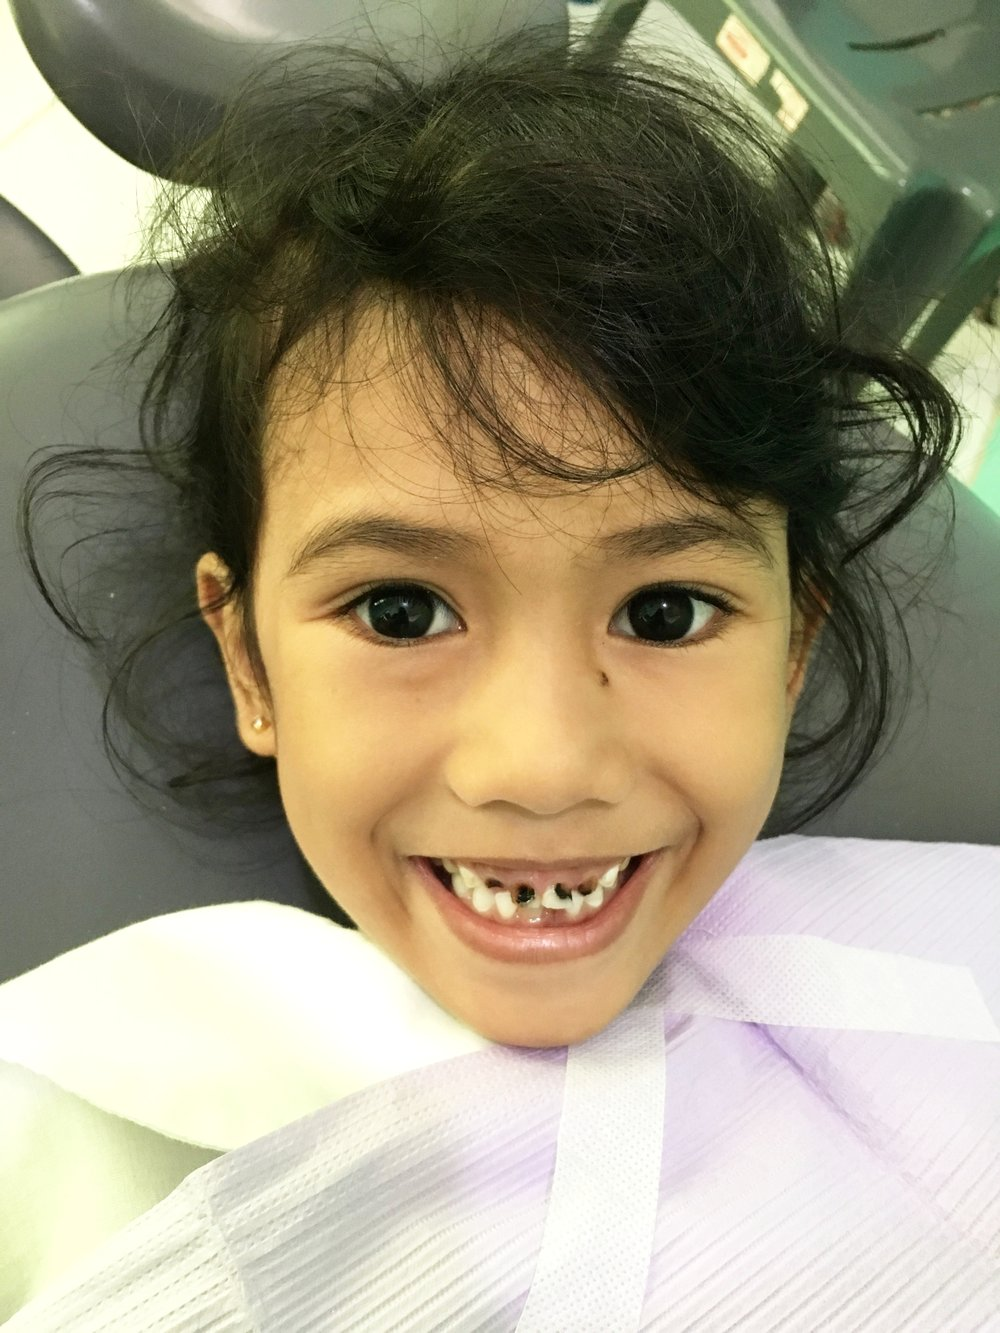 Child with painful cavities on her front teeth.